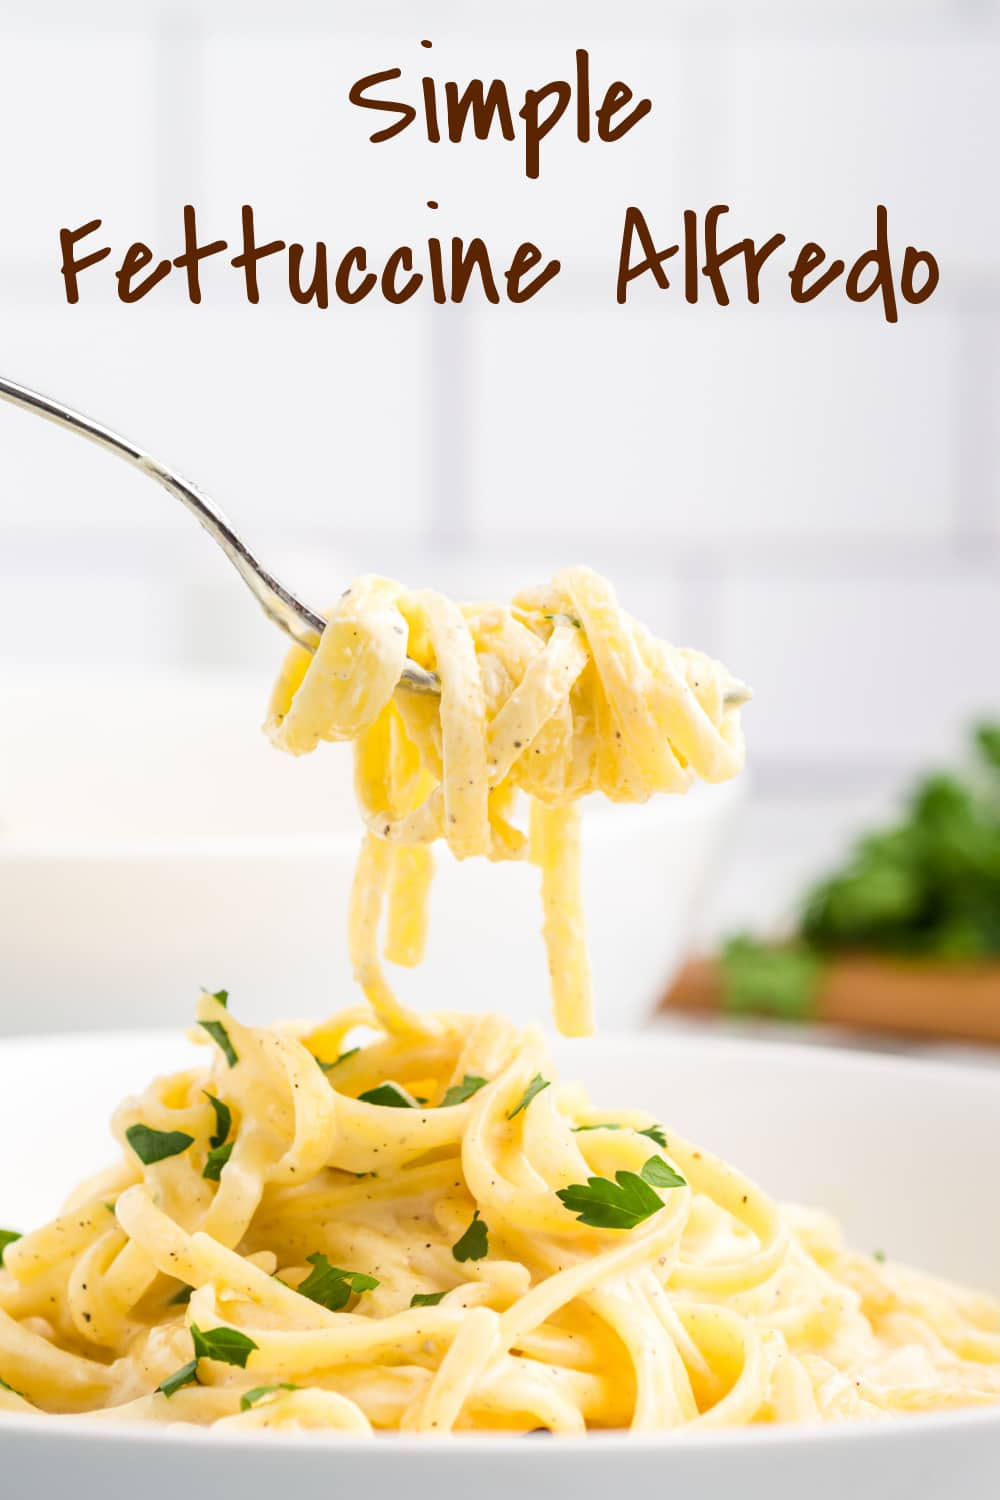 The smoothest Fettuccine Alfredo you'll ever taste. As the cheese melts into the liquid and coats the pasta, you'll understand why the most basic of pasta recipes is truly one of the best! via @cmpollak1